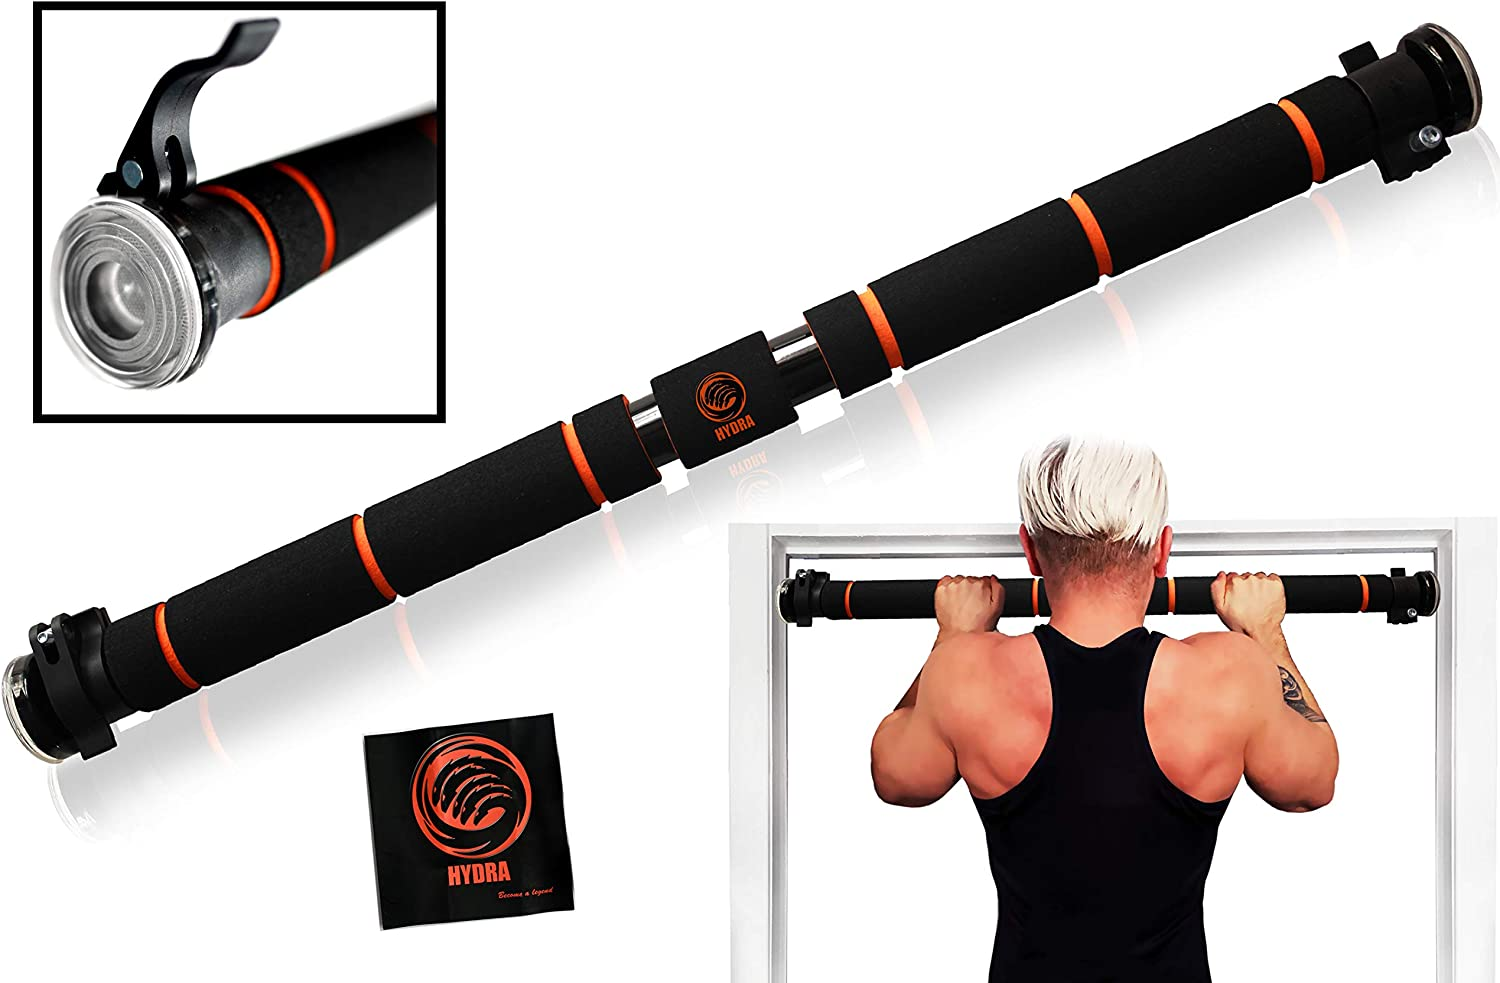 HYDRA Adjustable Pull Up Bar Courier shipping free shipping with Sma Doorway Chin – latest